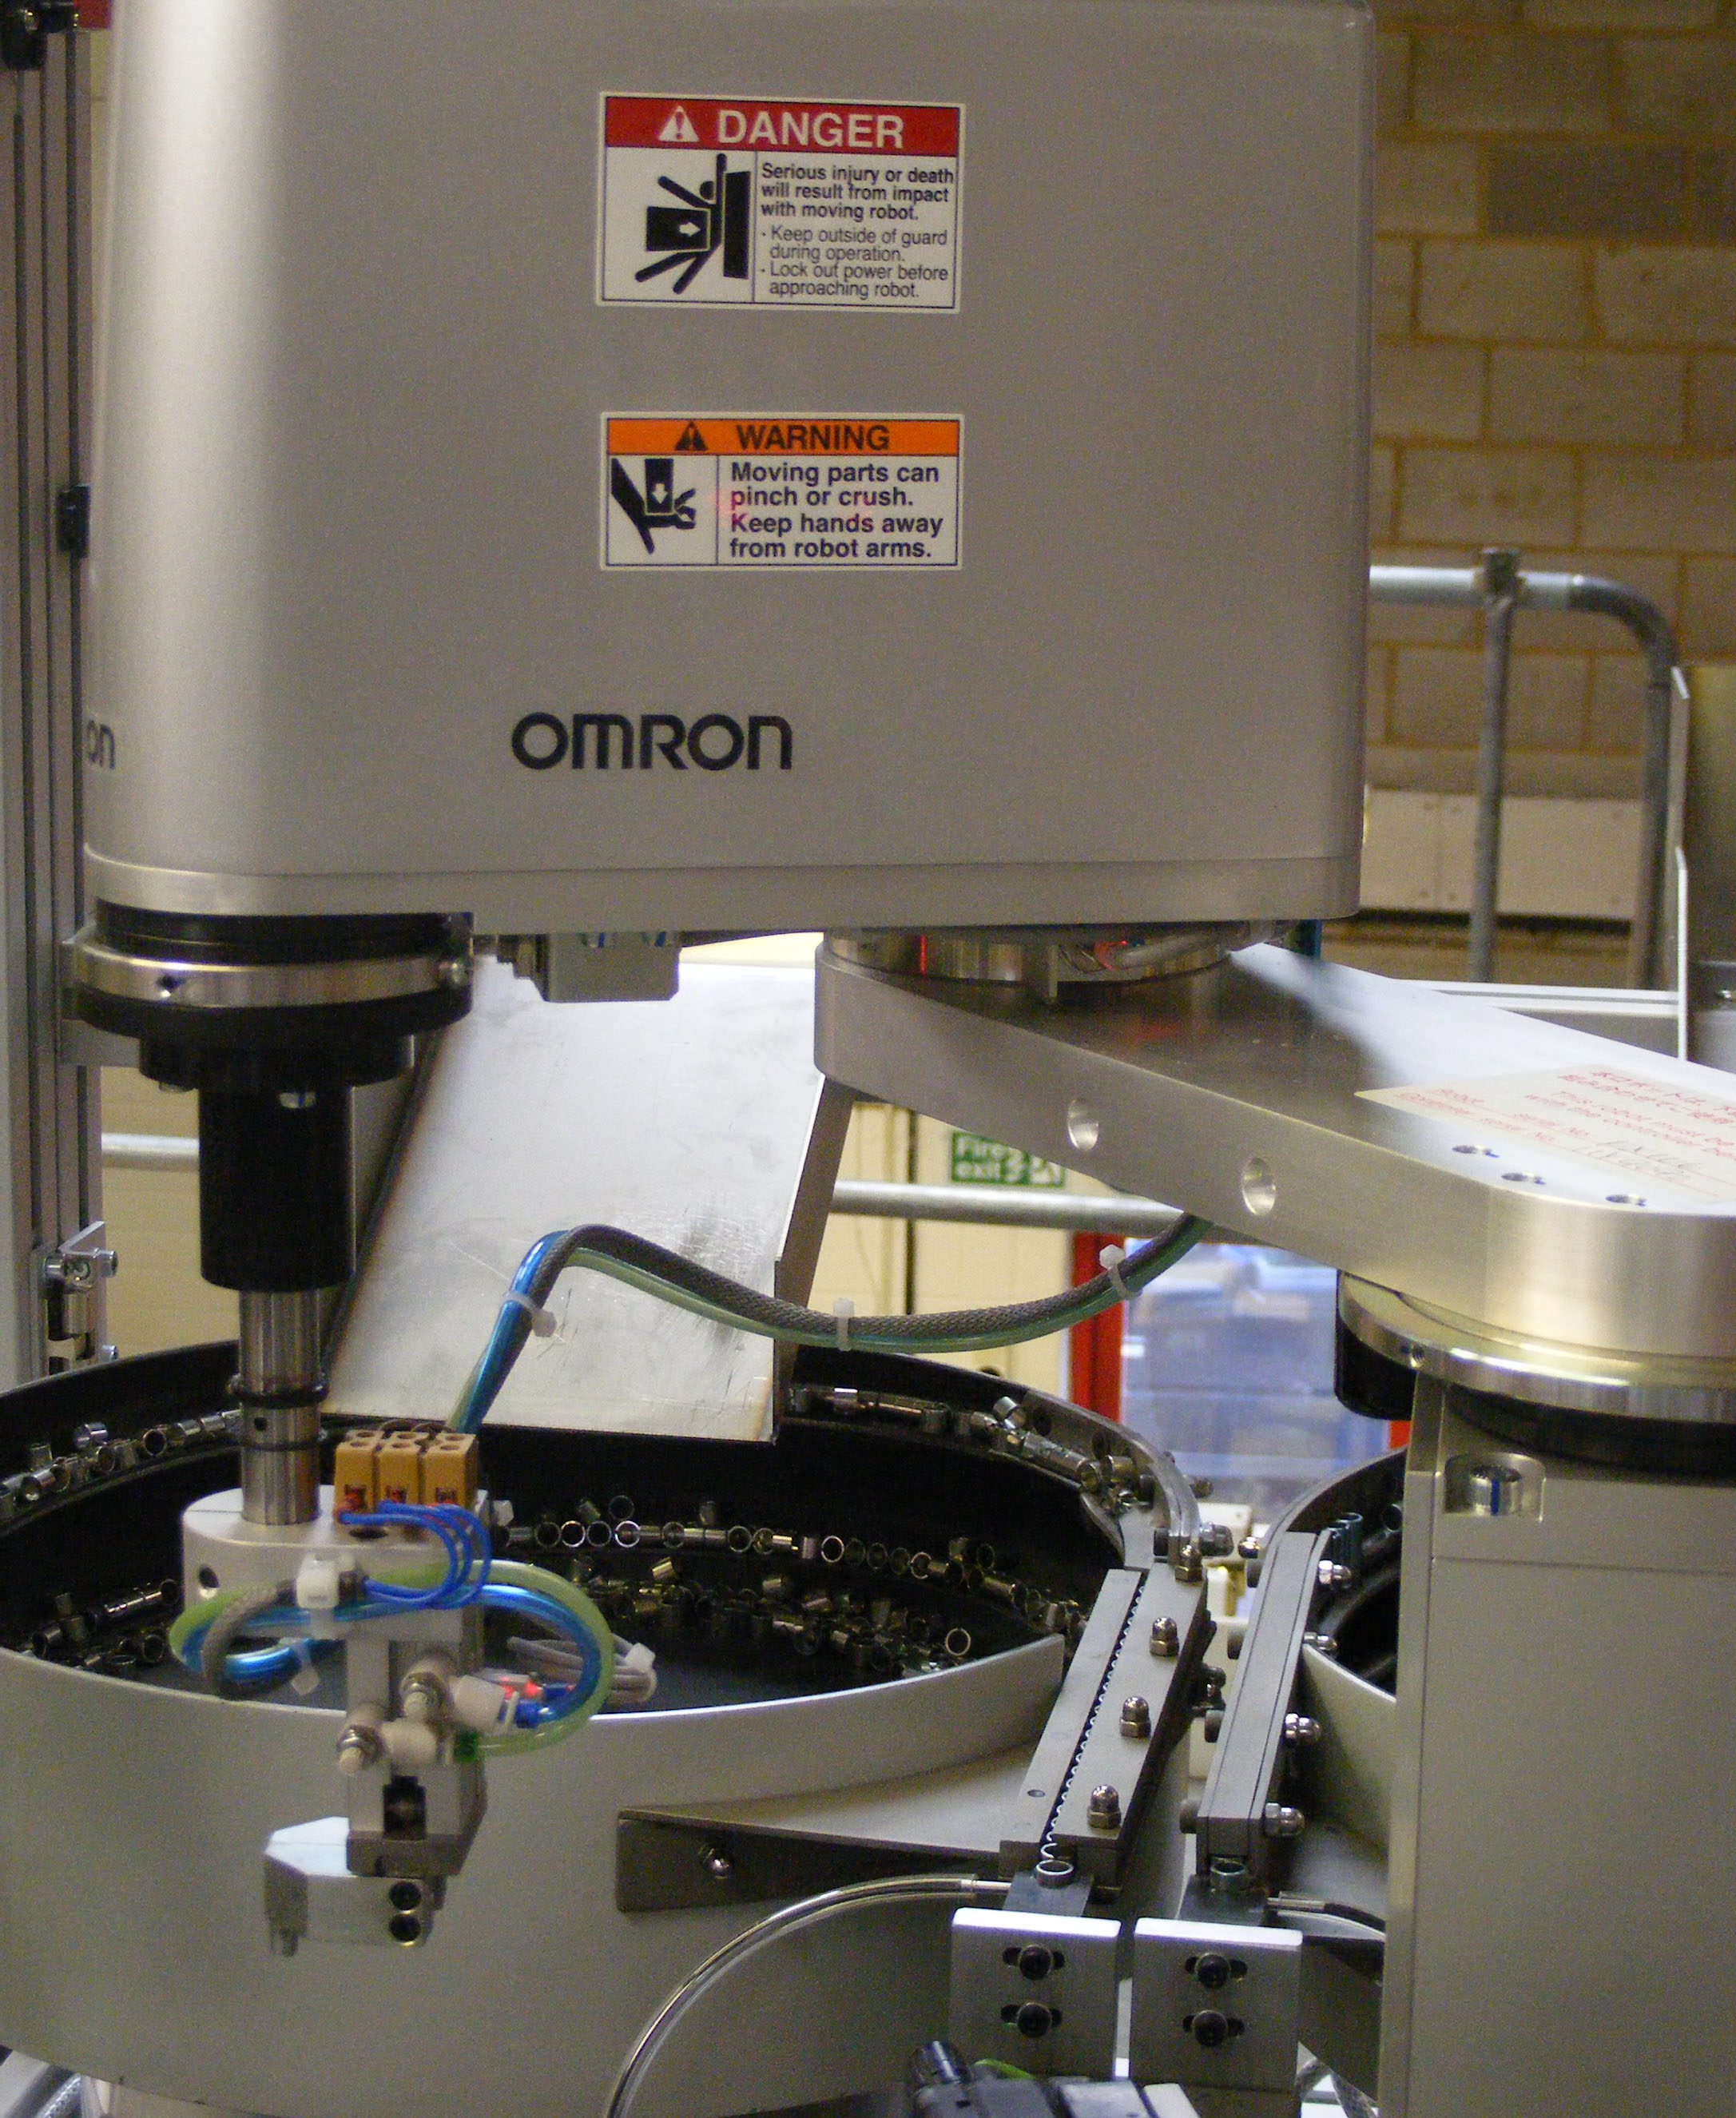 An automation solution based on the Omron SCARA robot